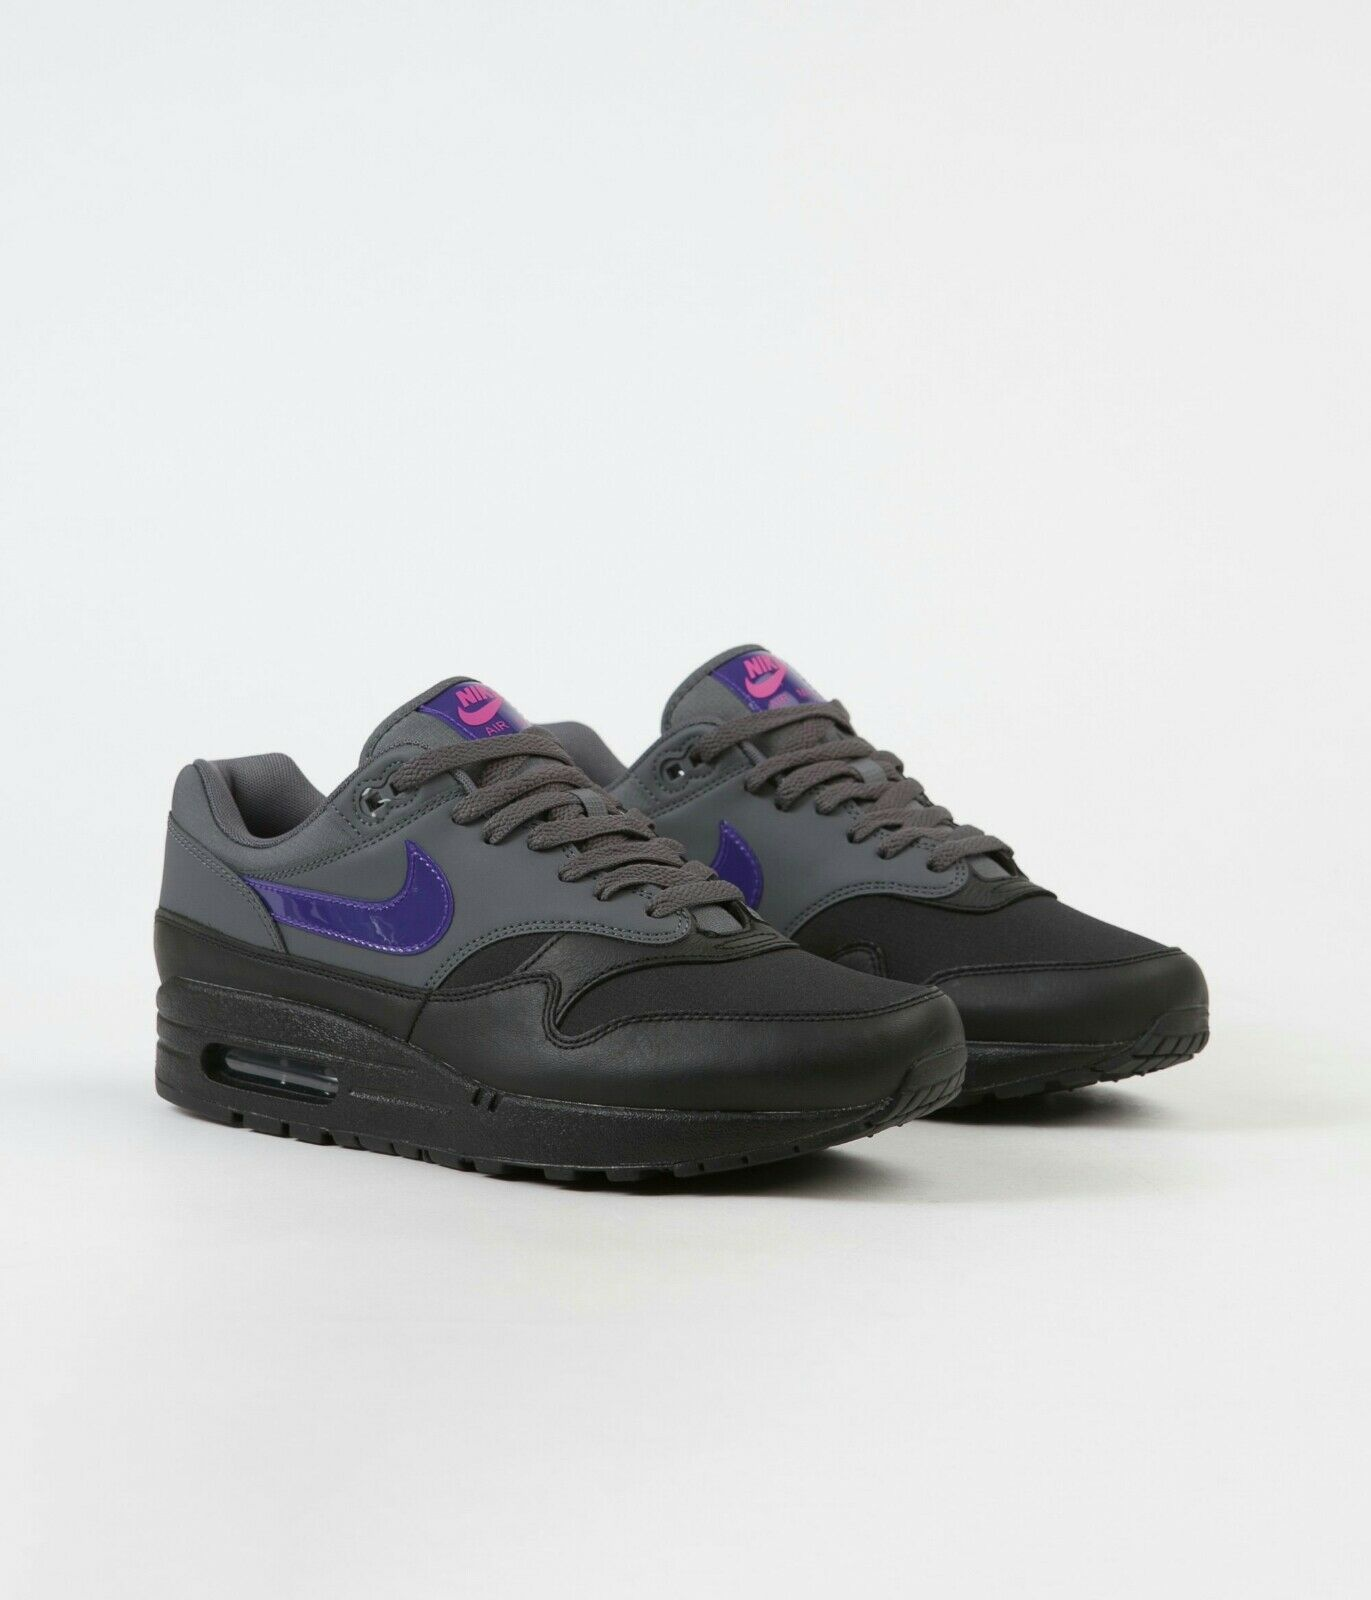 Nike Air Max 1 (US 9) Pegasus 91 93 95 97 98 180 270